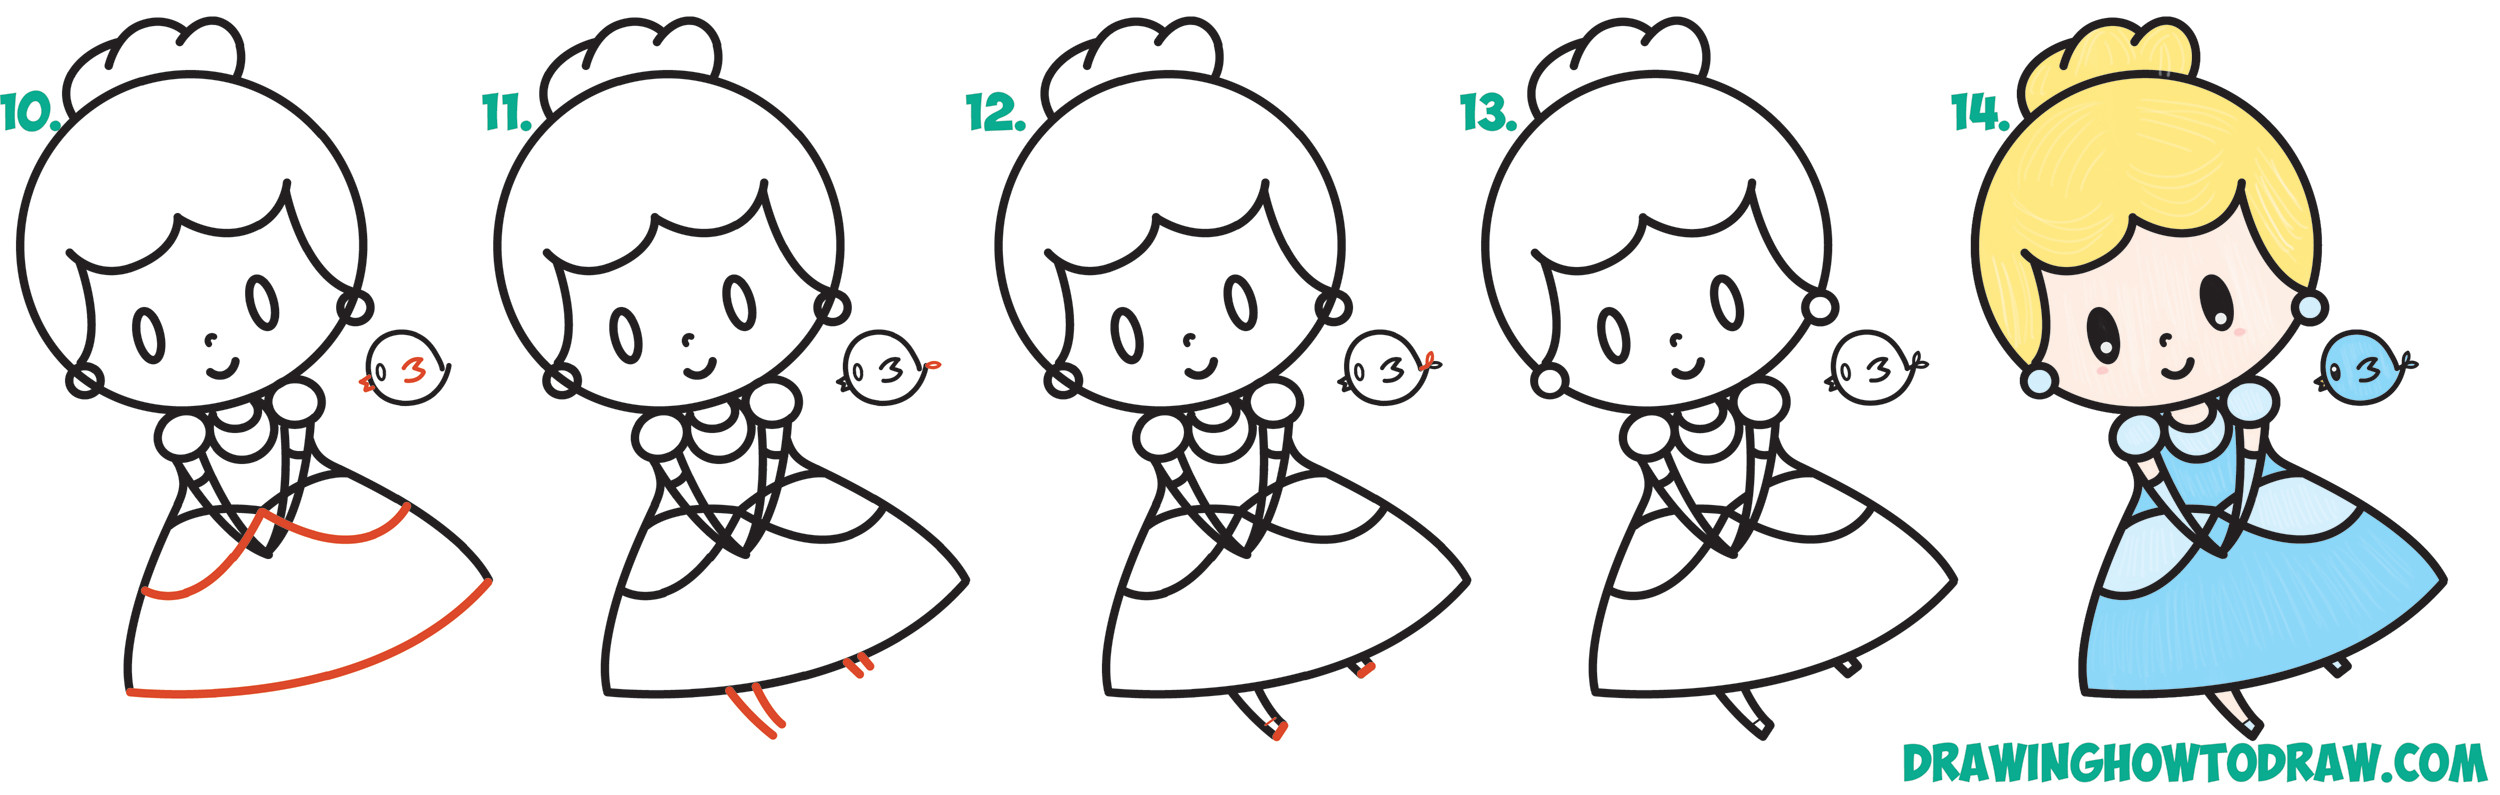 Learn How to Draw Cute Chibi / Kawaii Cinderella & Blue Bird Simple Steps Drawing Lesson for Children